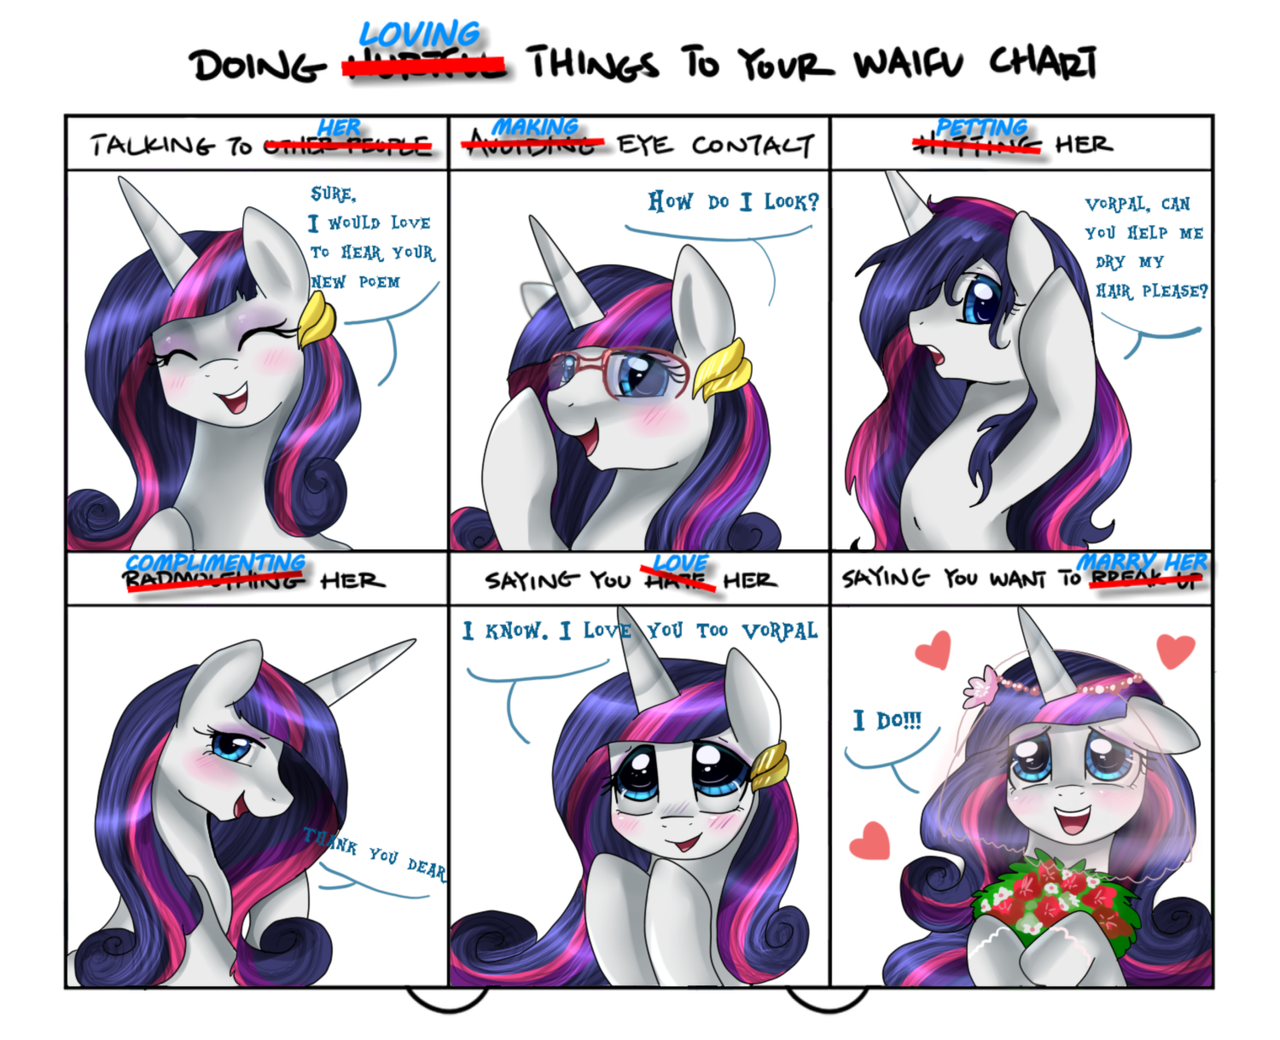 Equestria Daily - MLP Stuff!: NOT Doing Hurtful Things to Your ...